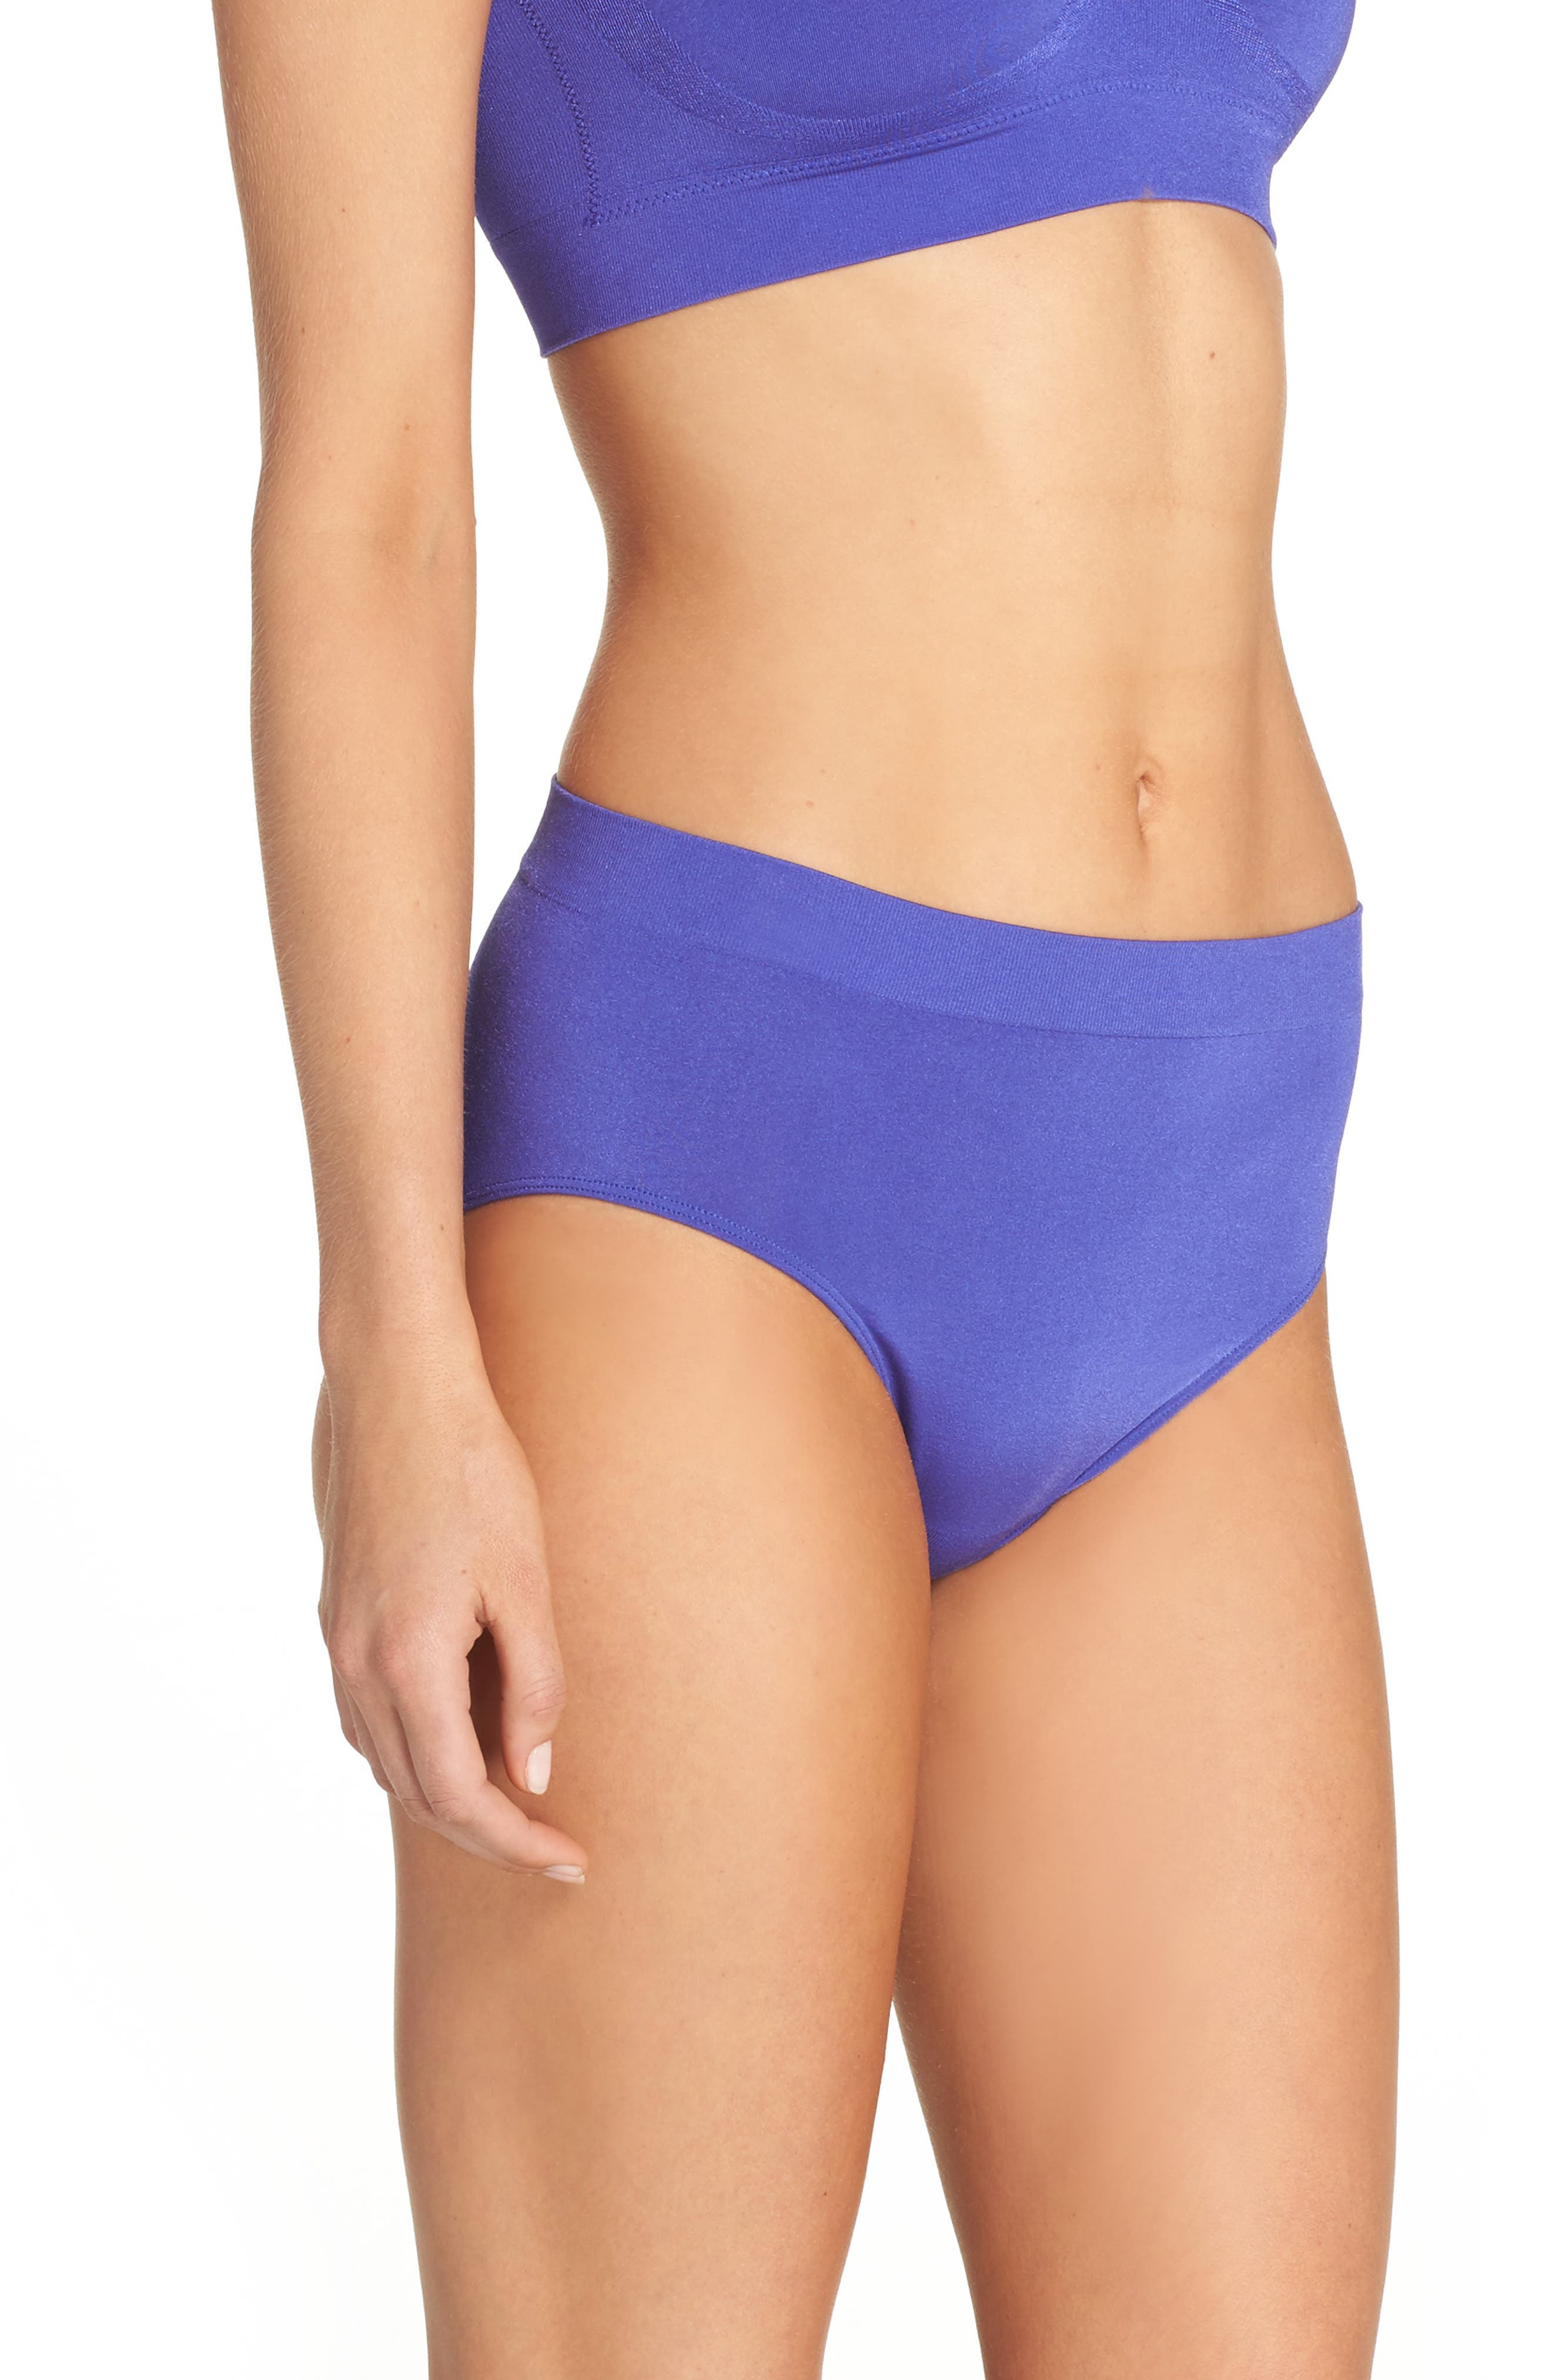 Alternate Image 3  - Wacoal B Smooth High Cut Briefs (3 for $39)